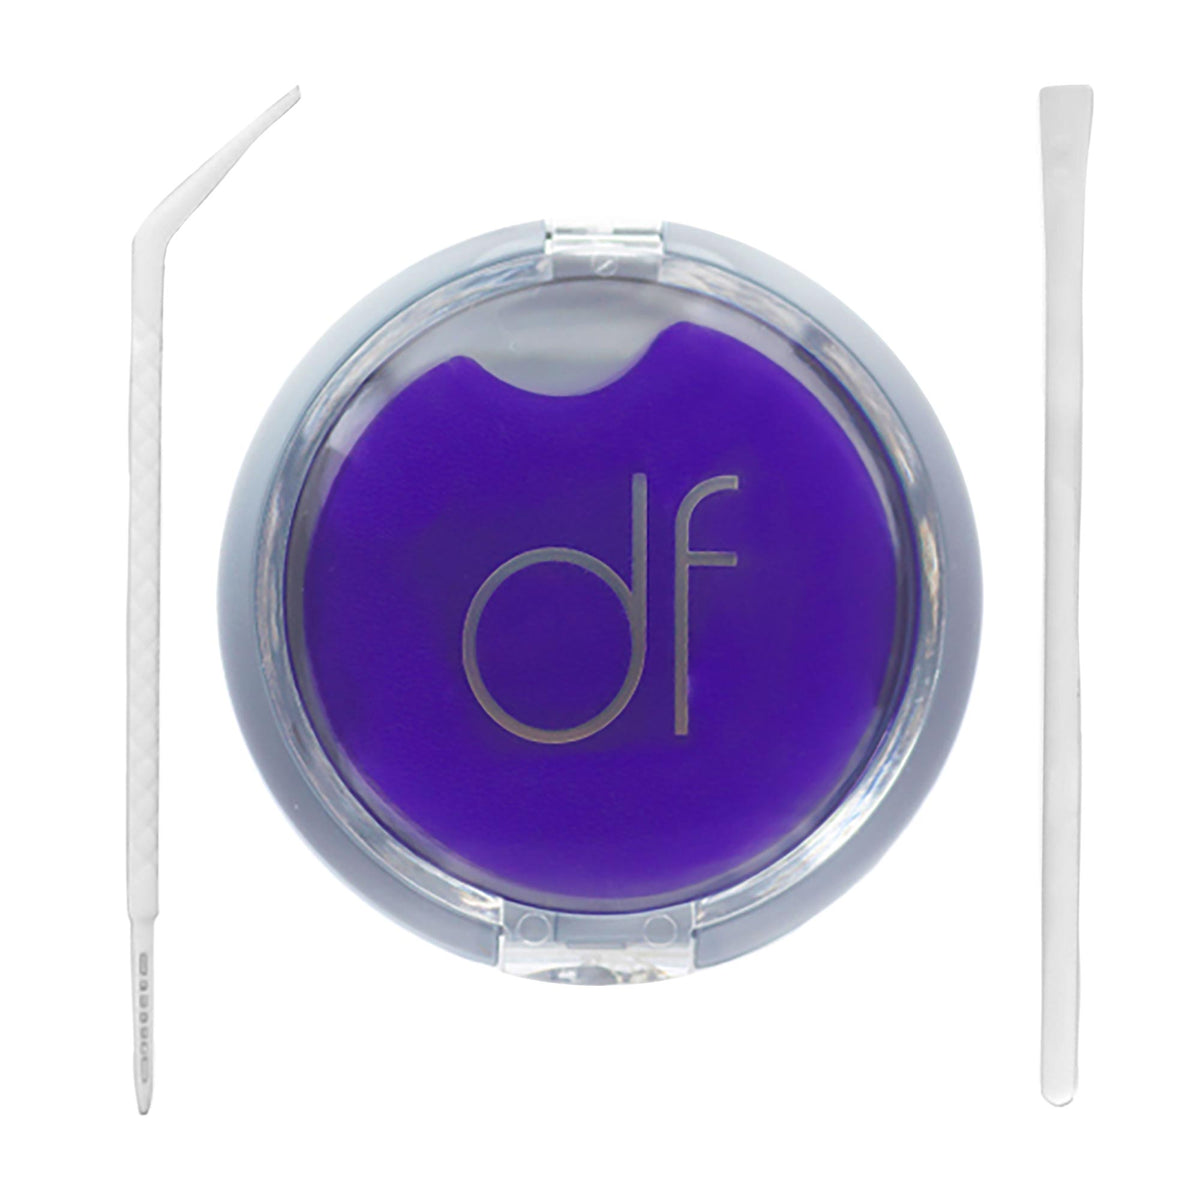 Dermaflage Application Tool Kit